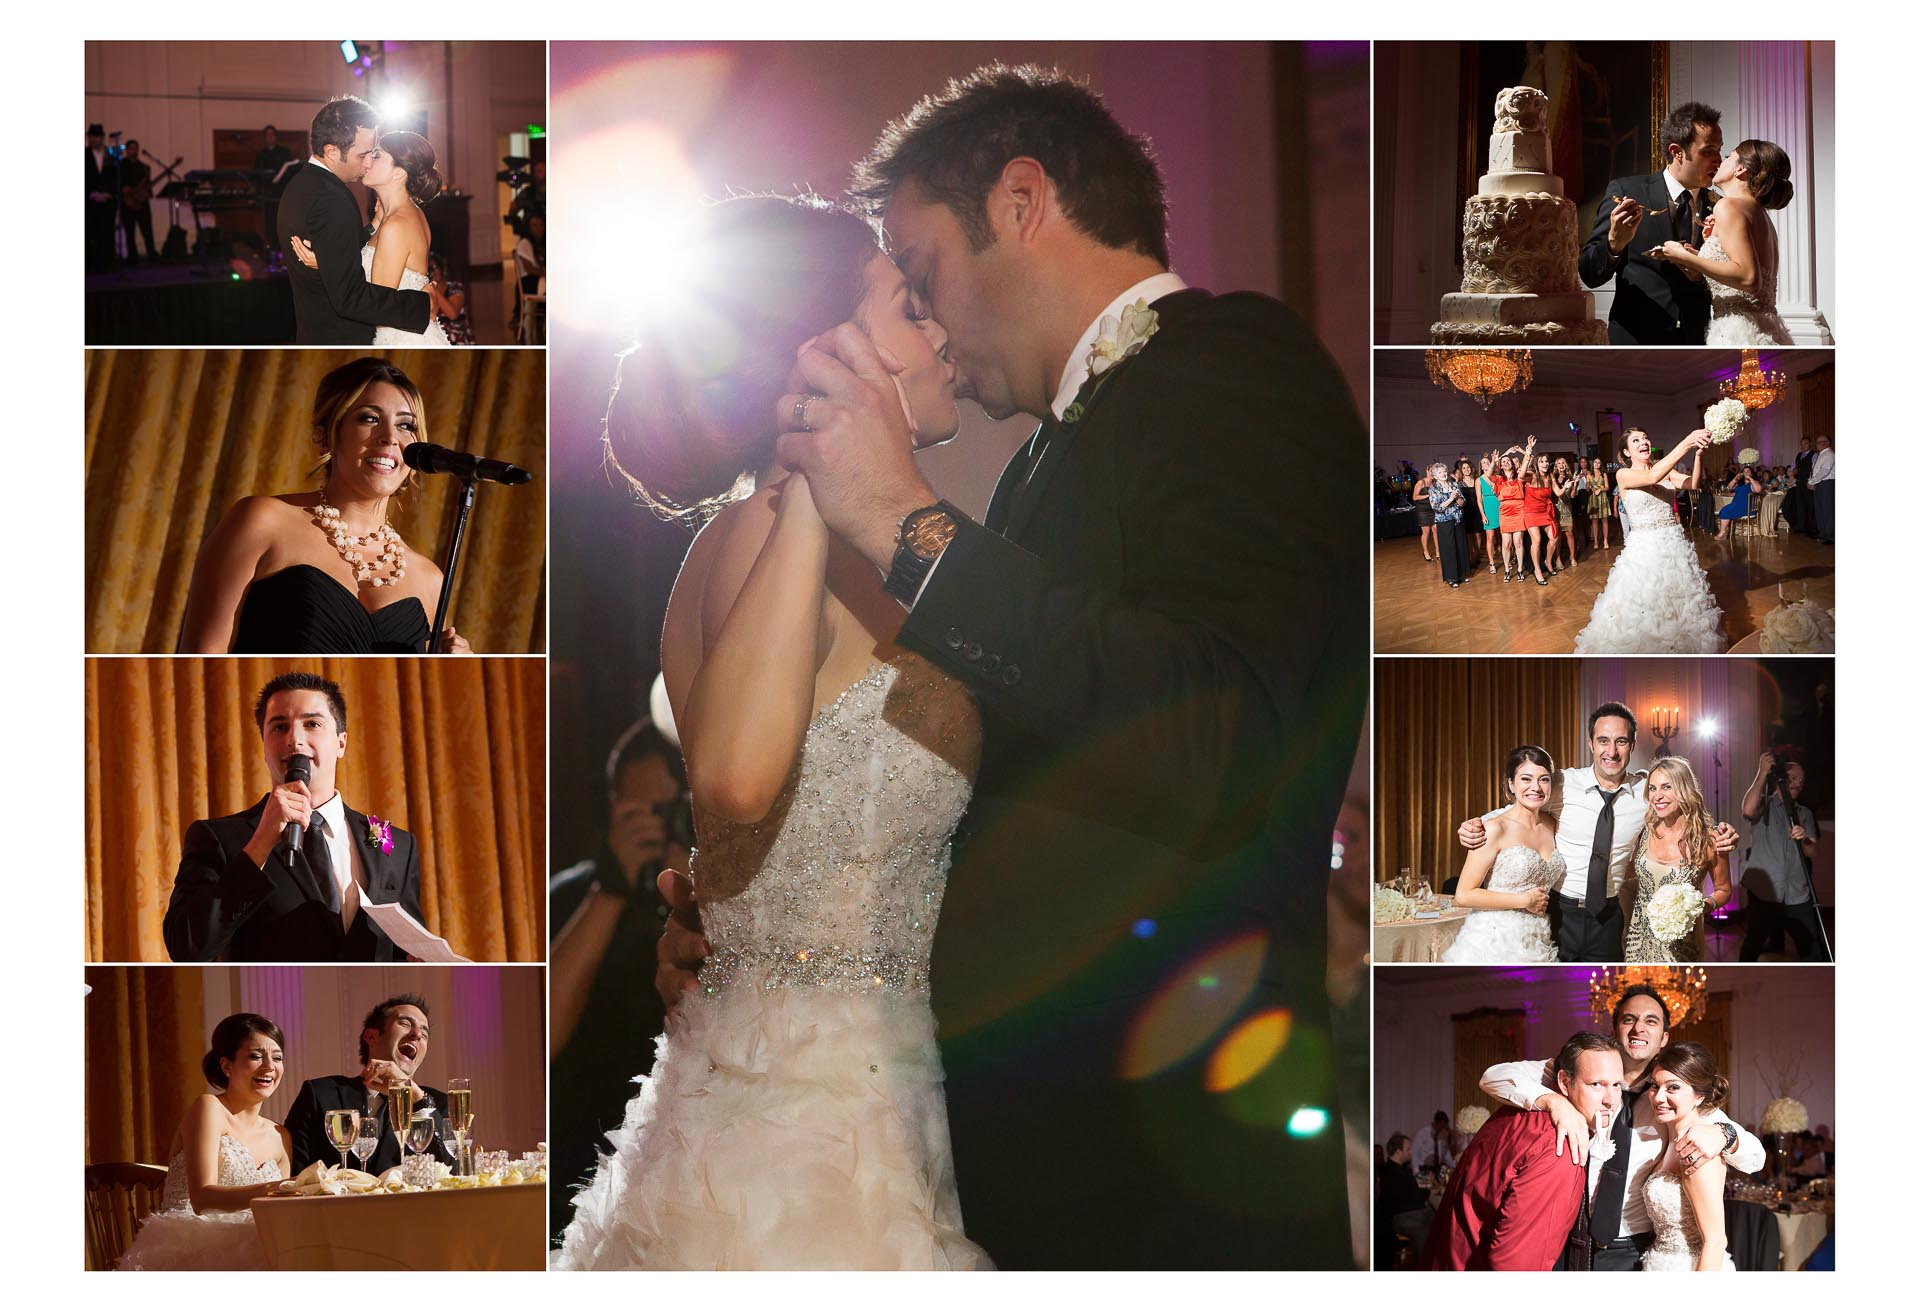 bulgari wedding photographer